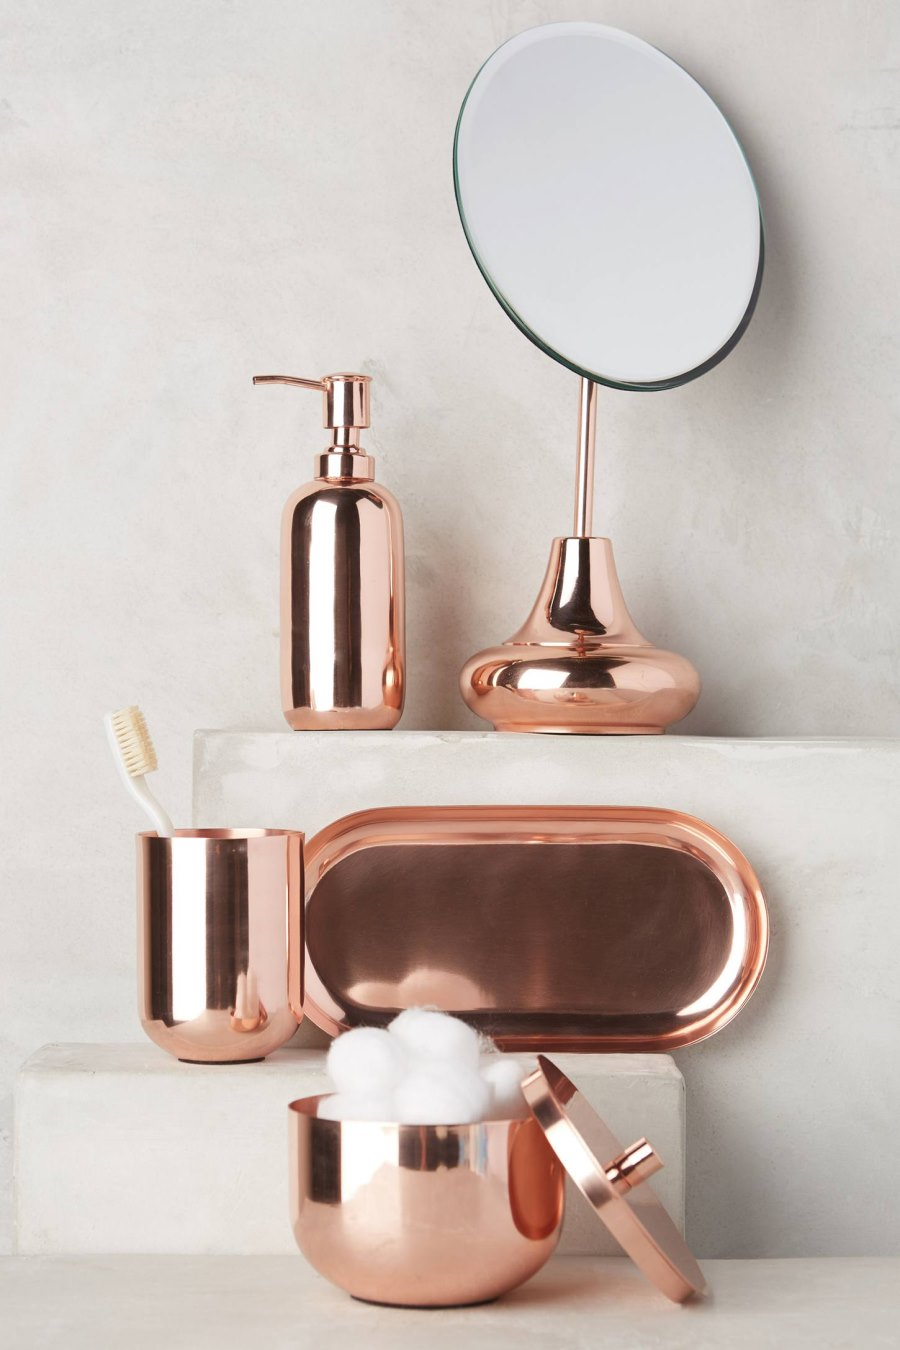 High end bathroom accessories with modern style for Bathroom ornaments accessories